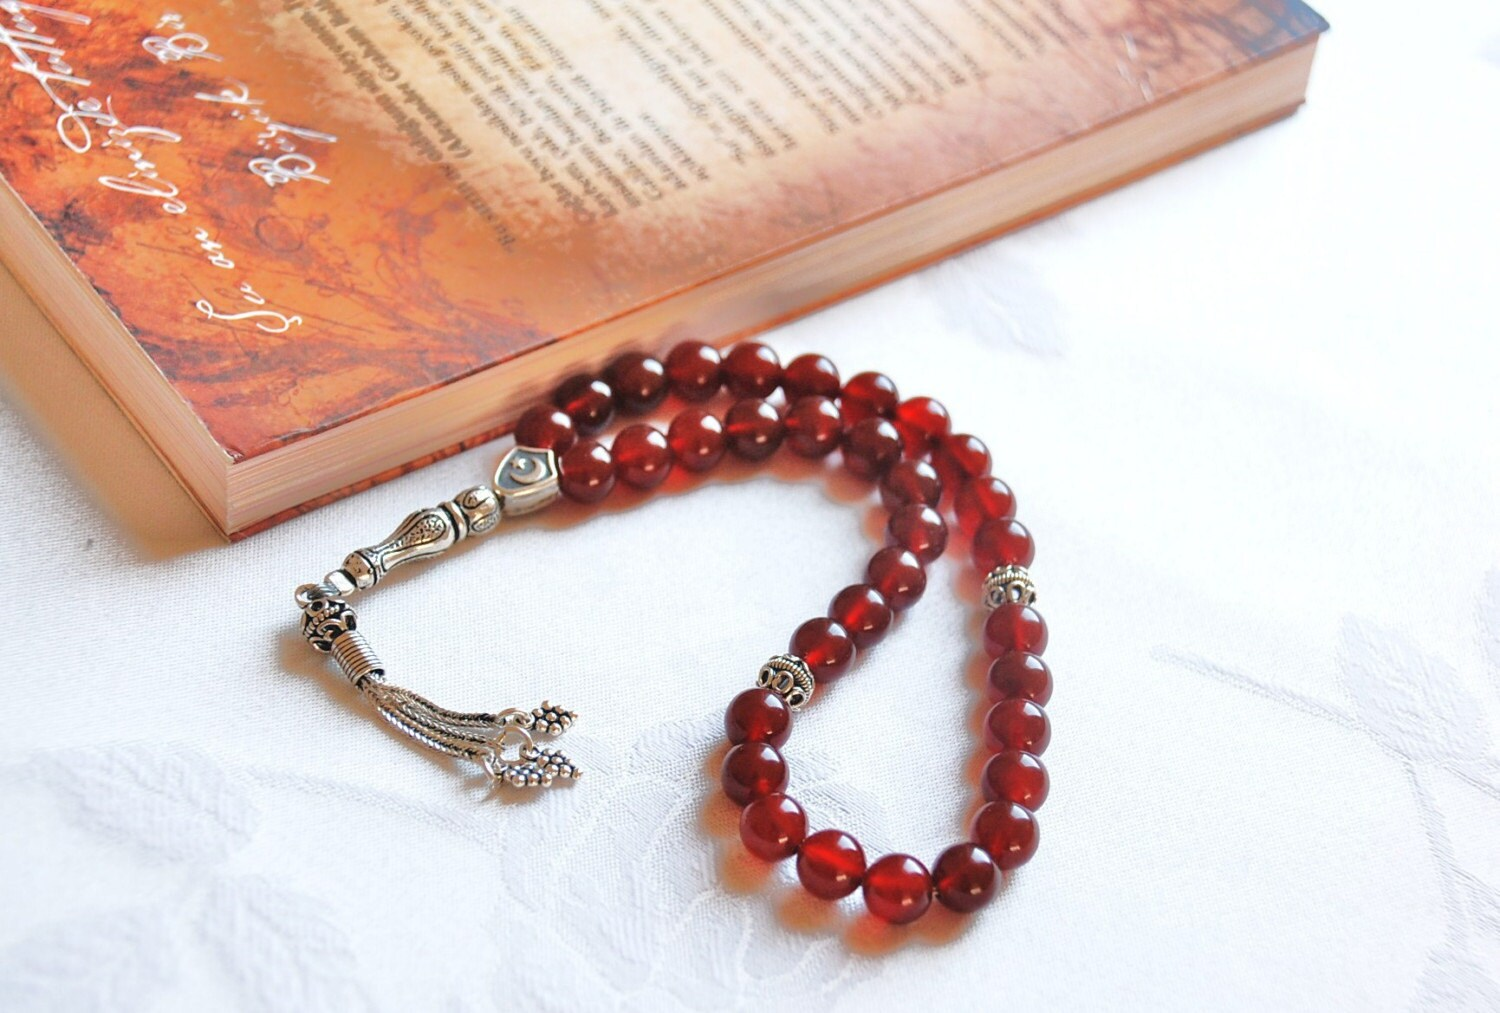 Agate Gemstone Silver Prayer Beads Tasbih by SevimsDesign on Etsy from etsy.com